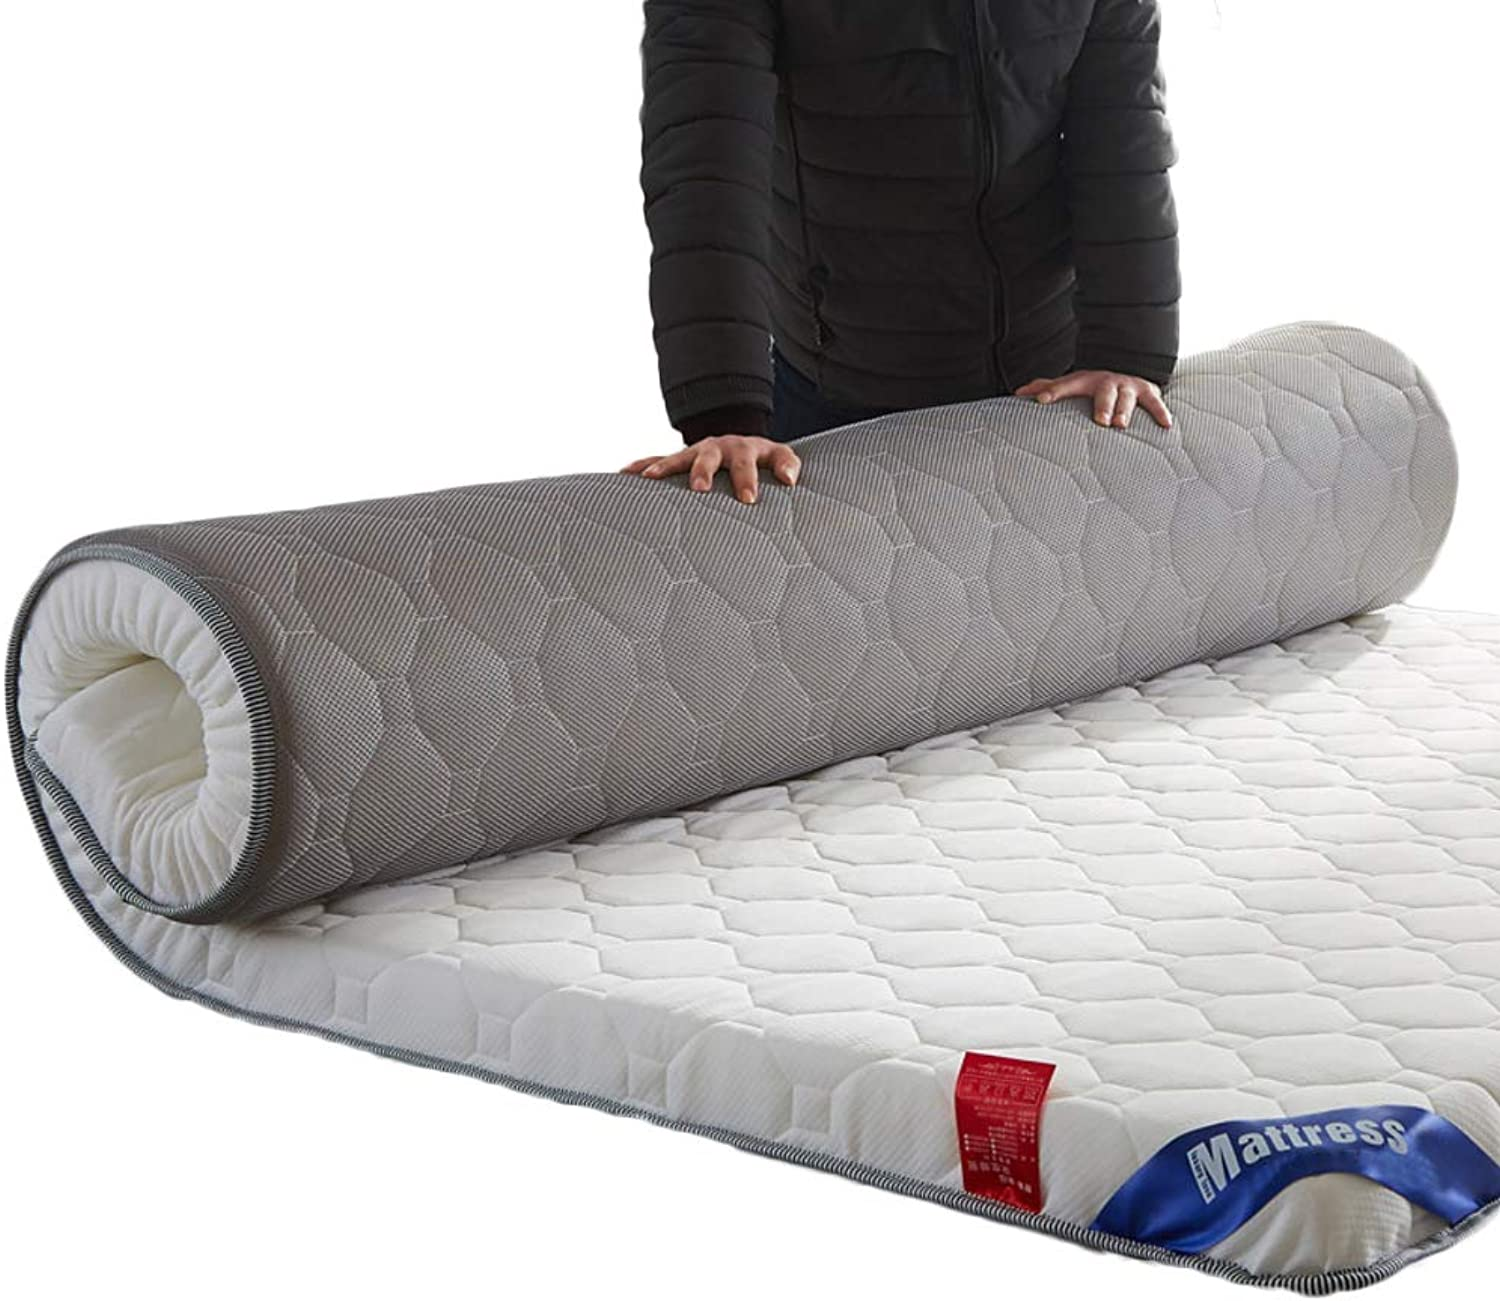 Comfort Quilted Foam Mattress Breathable, Ergonomic Folding Mattress Thick Anti-mite-H 120x200cm H 6cm